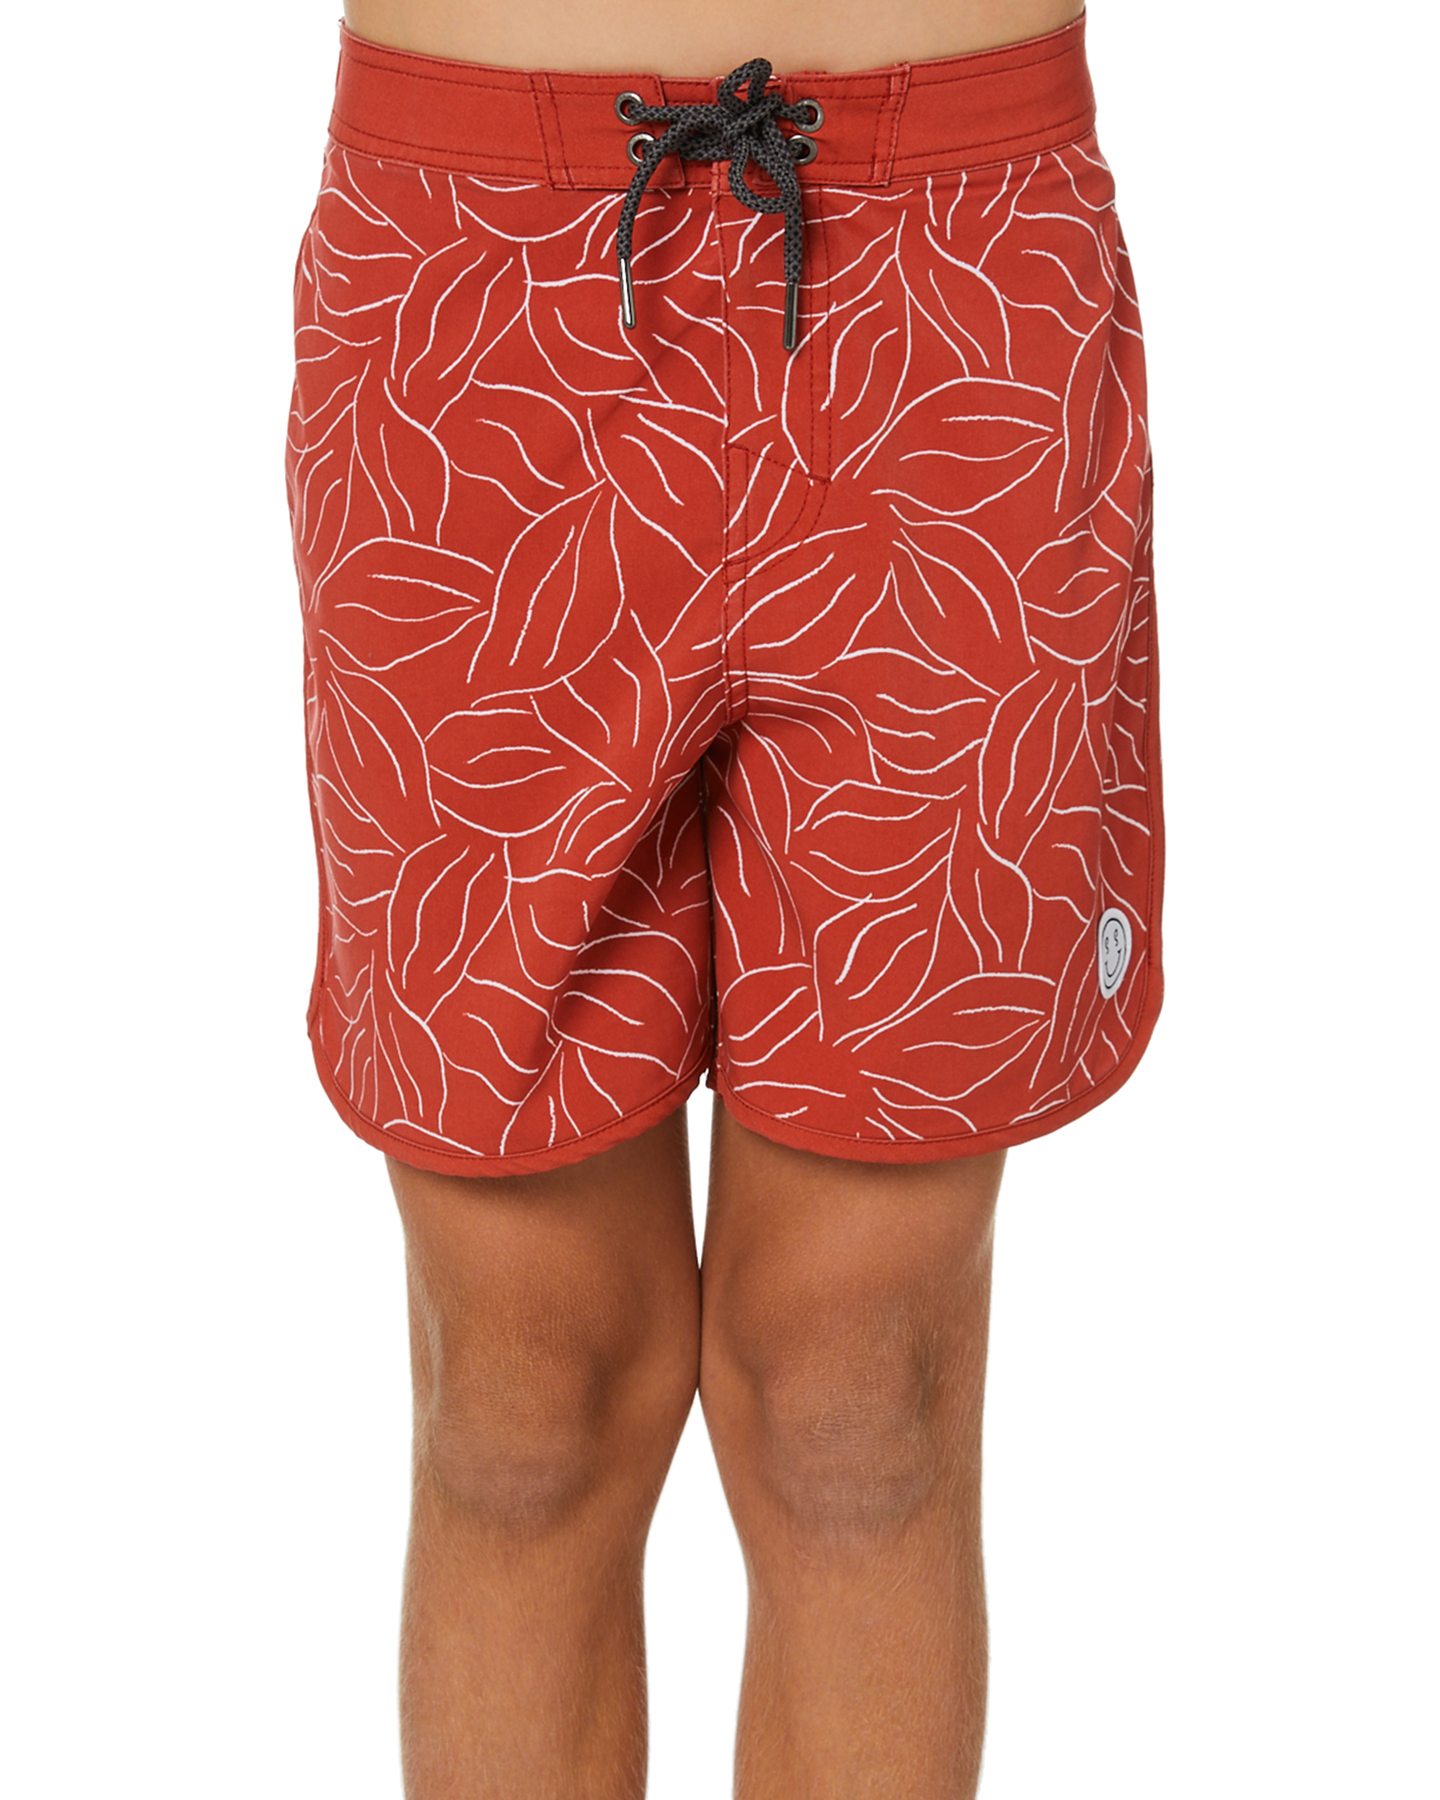 Stay Boys Crowned Scallop Trunk - Teens Melon Melon